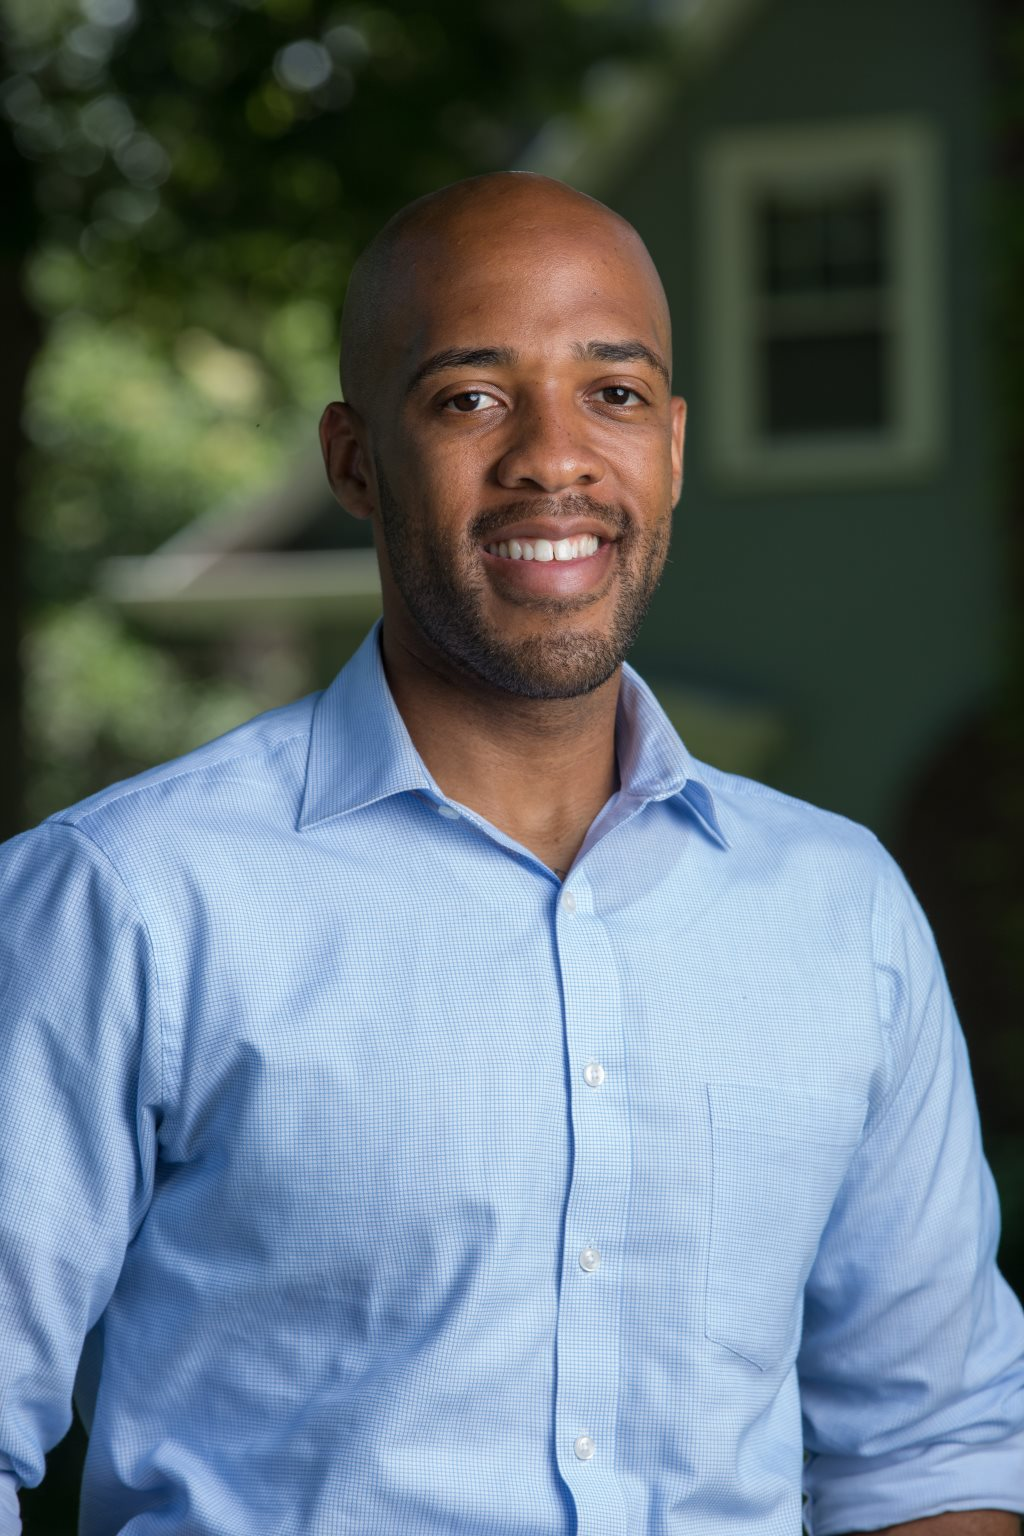 State Rep. Peter Barca endorses Mandela Barnes for Lt. Governor